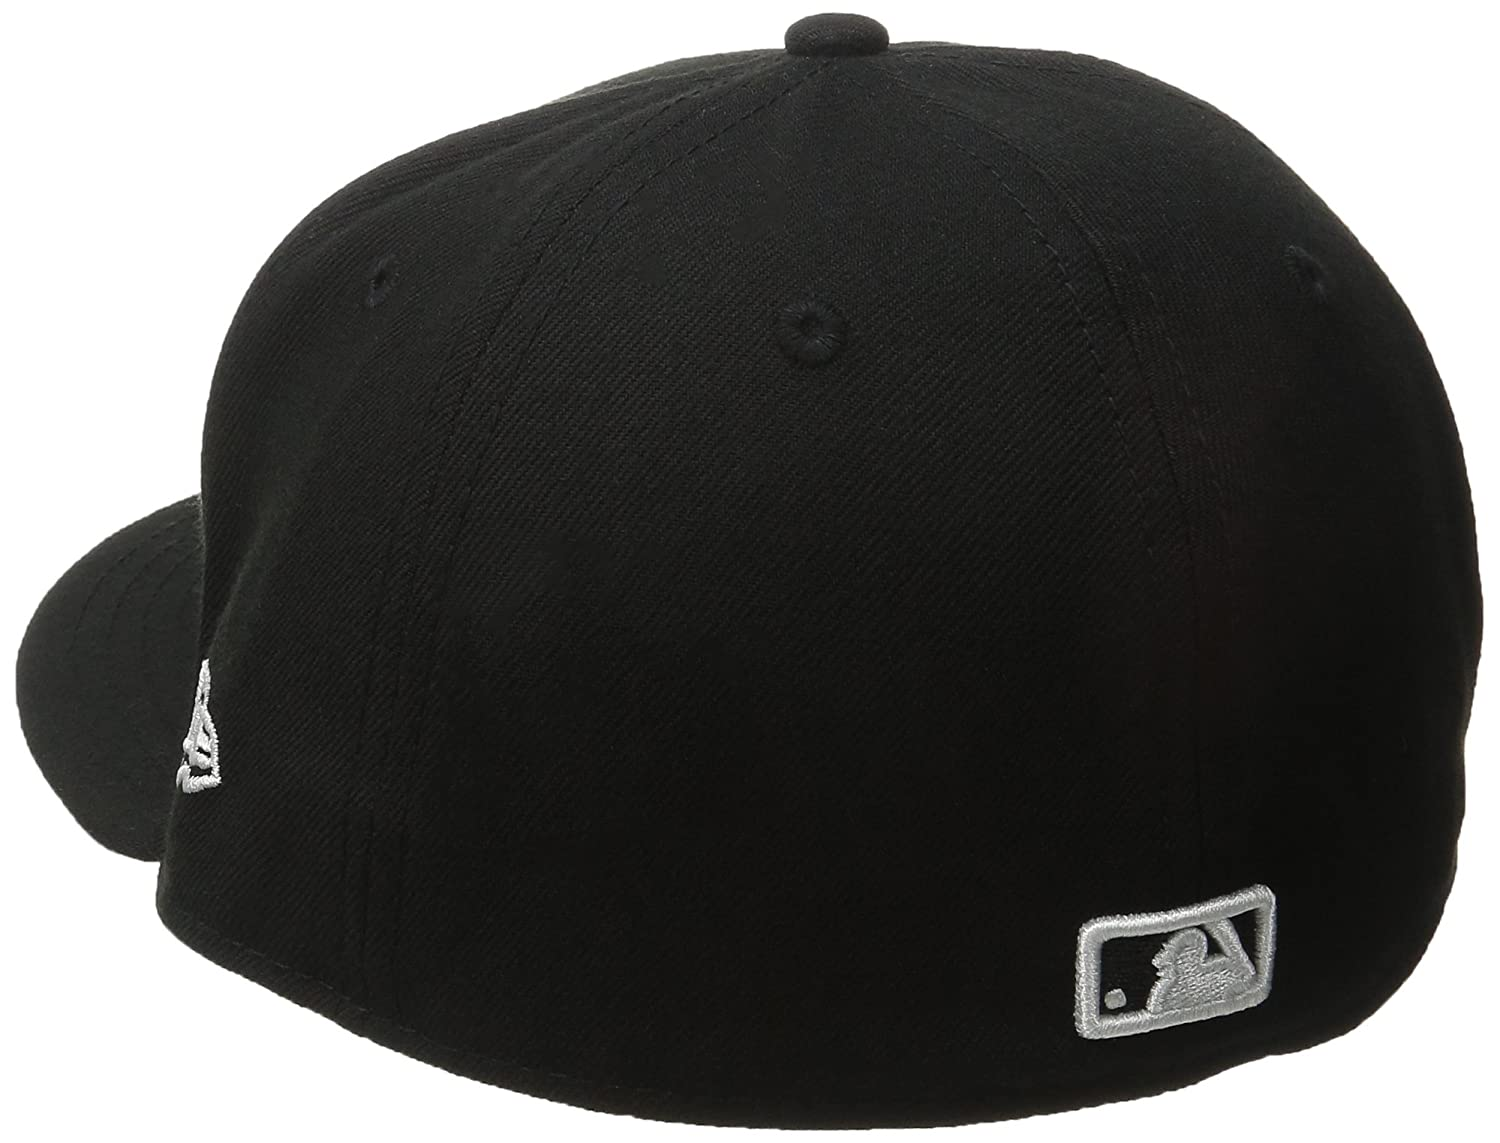 d281fae13 Amazon.com : New Era MLB Los Angeles Dodgers Black with White 59FIFTY  Fitted Cap : Clothing